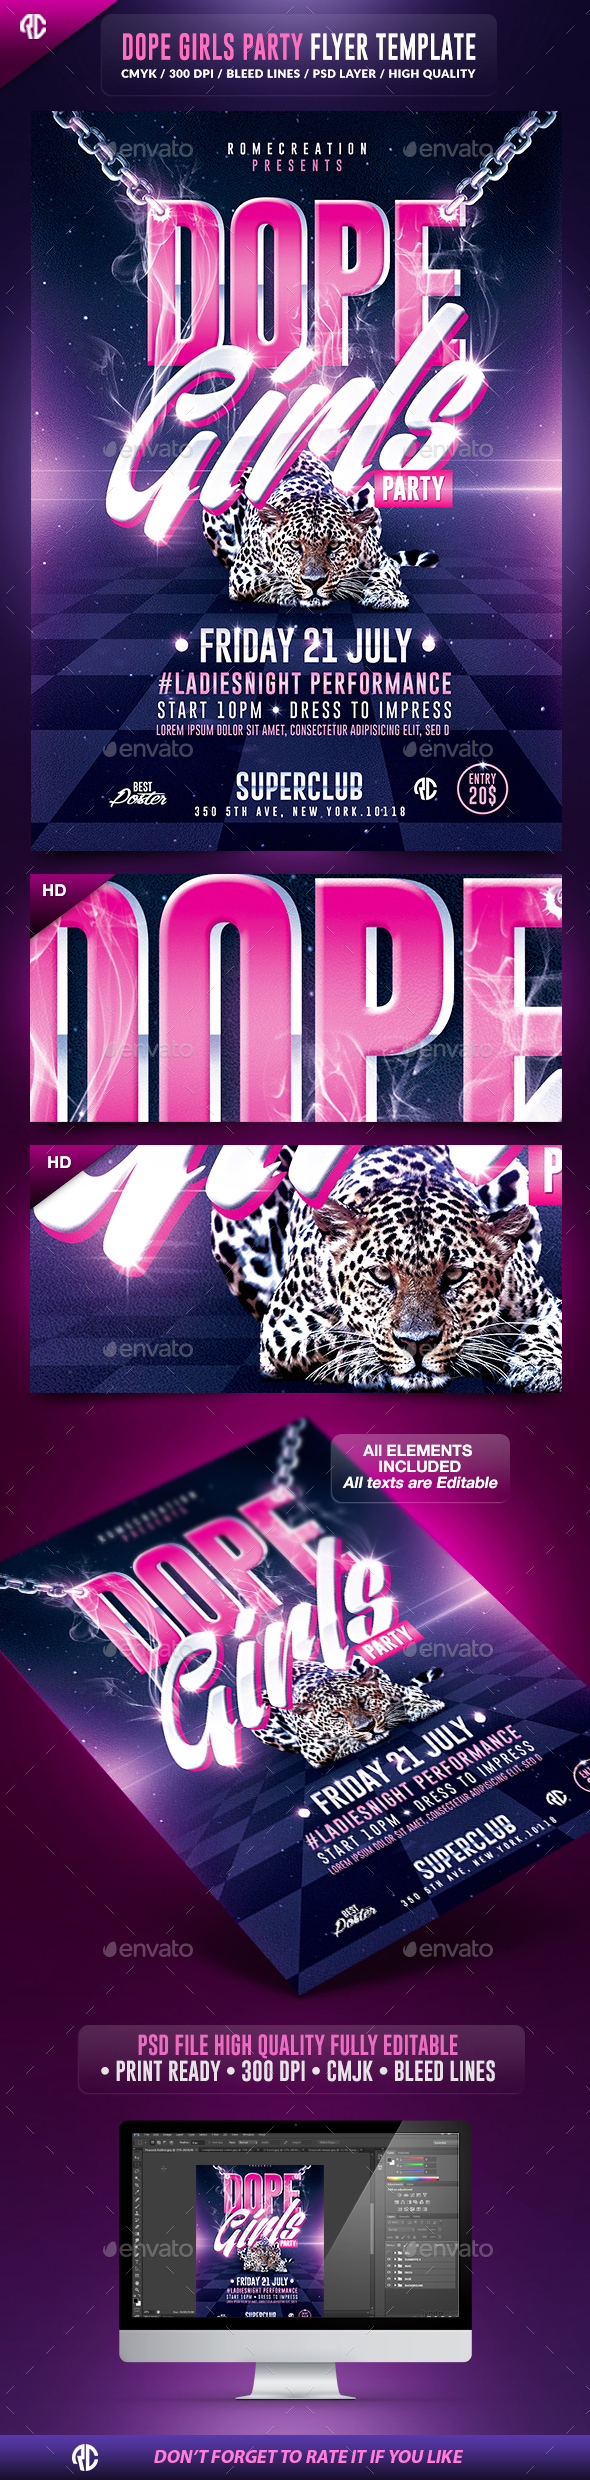 Dope Girls Savage Party | Psd Flyer Template - Flyers Print Templates